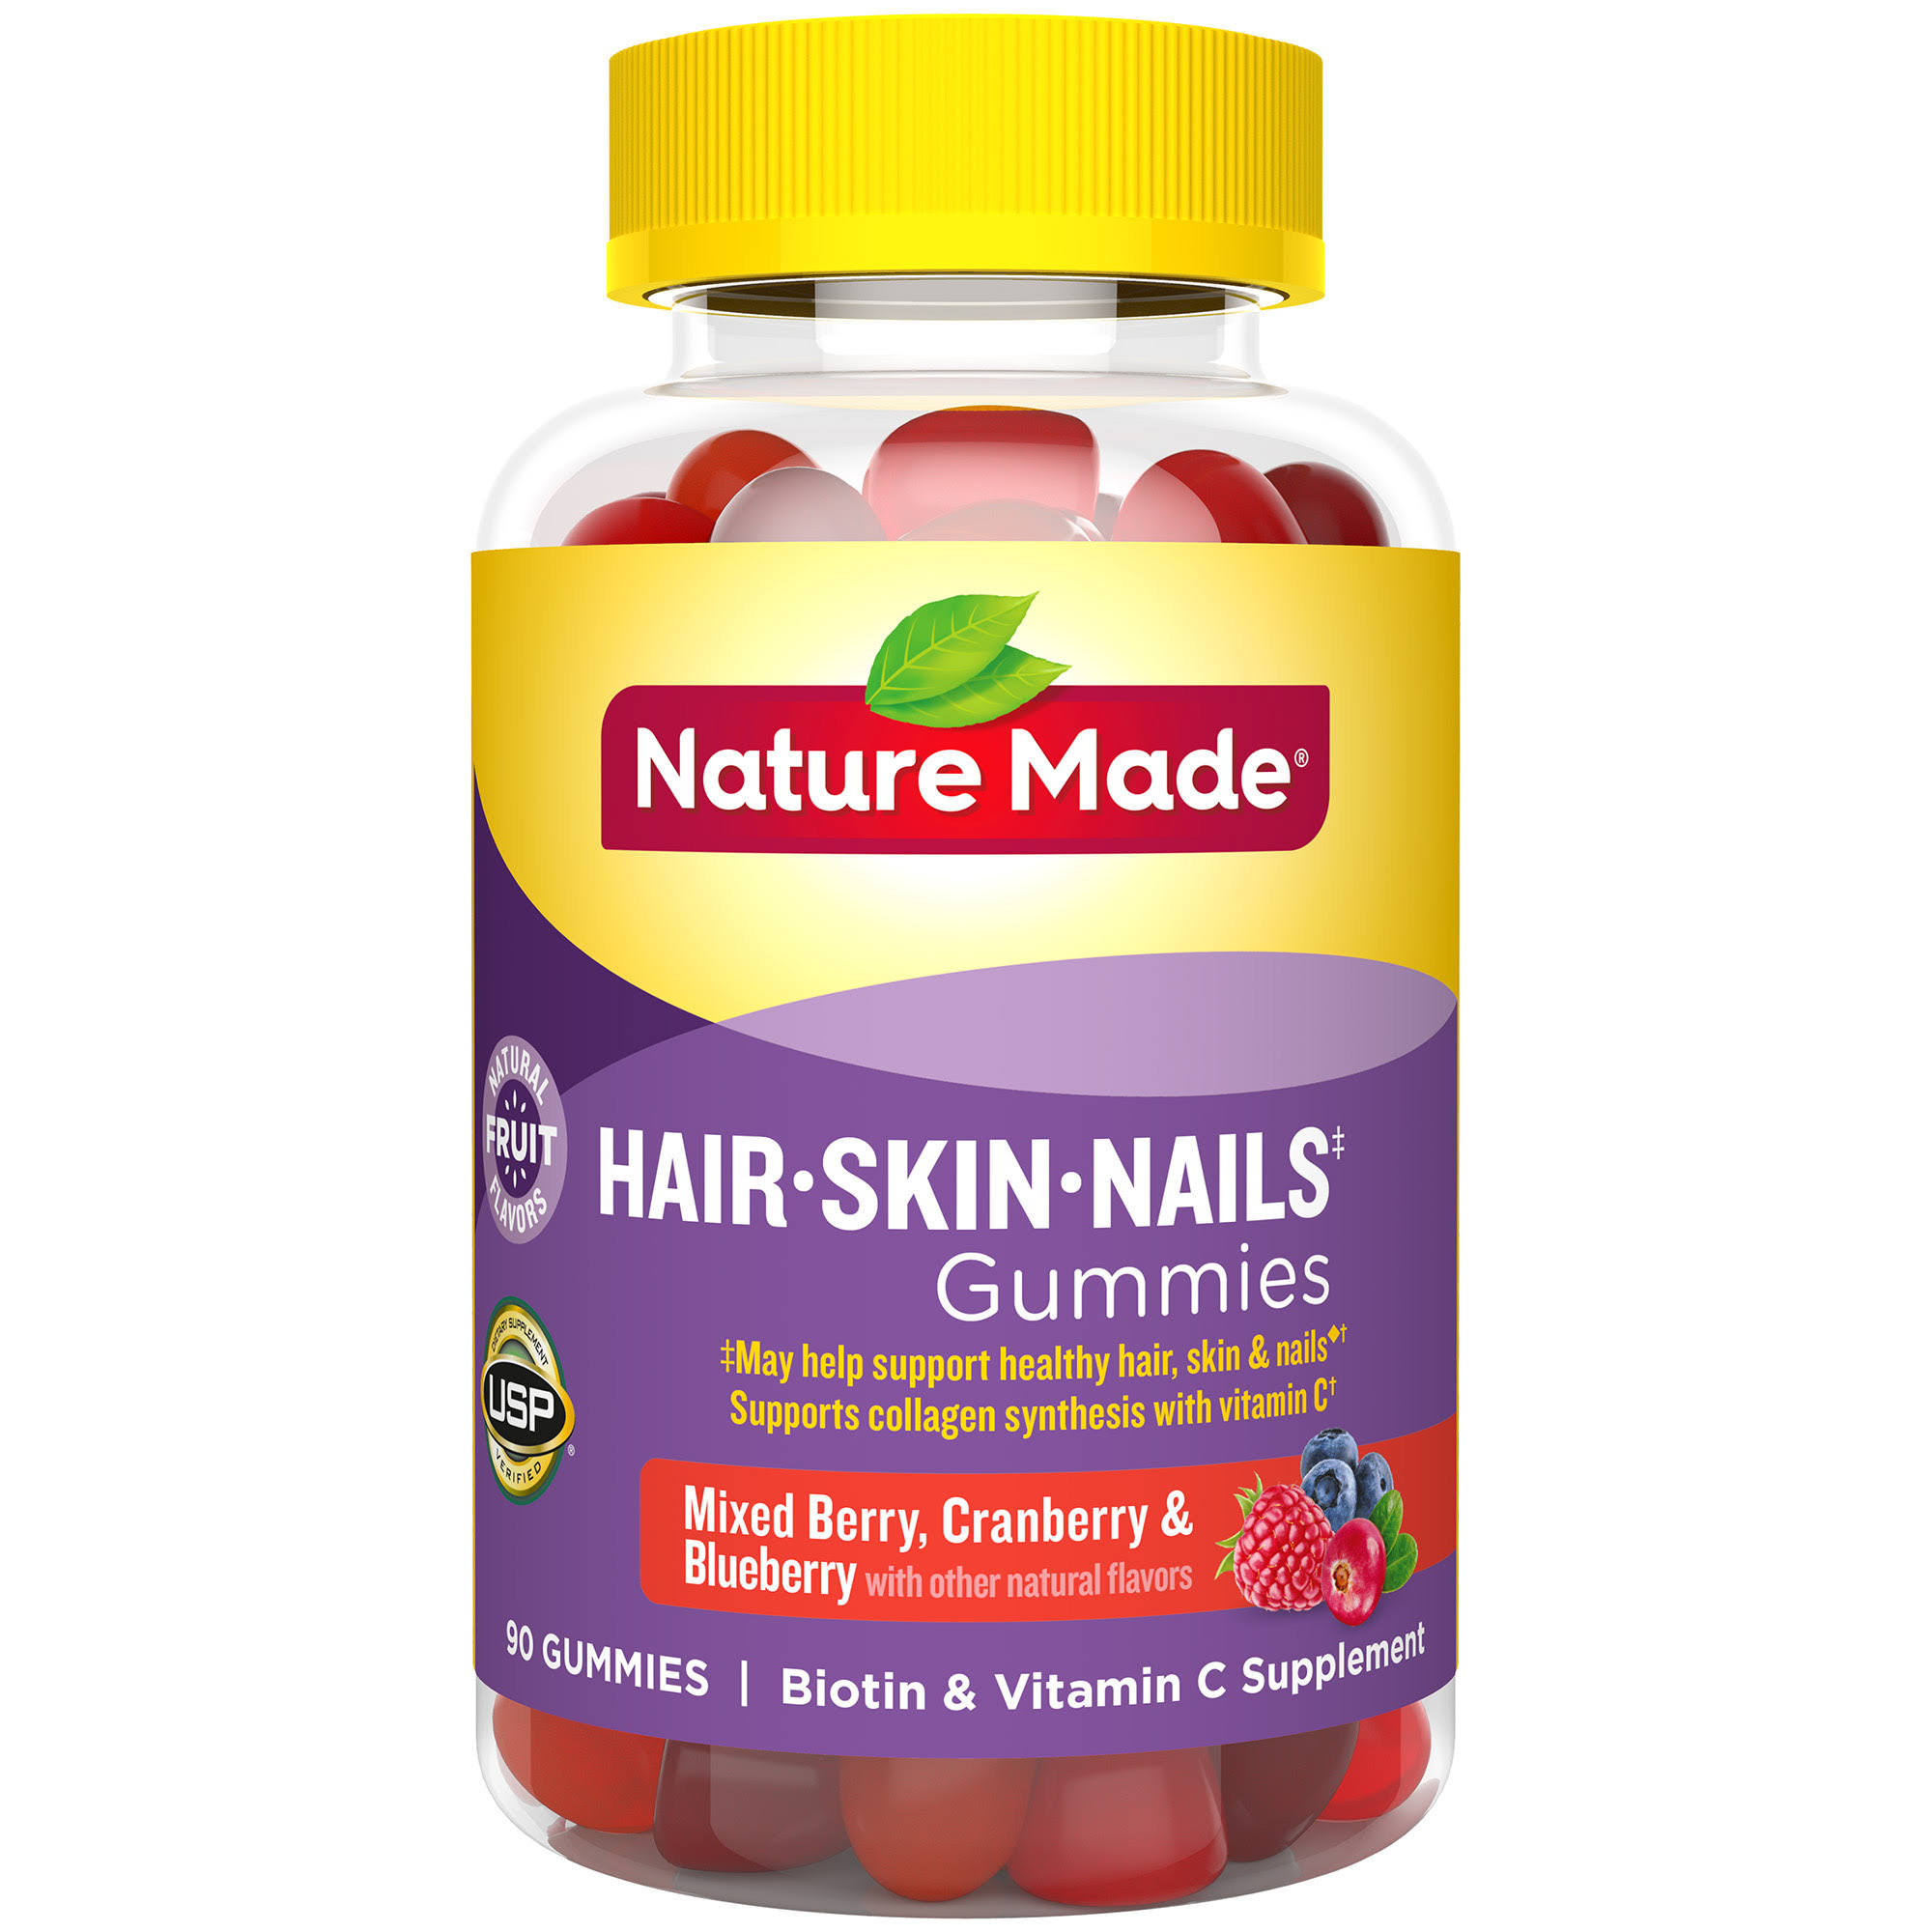 Nature Made Nails Adult Gummies - Mixed Berry, Cranberry and Blueberry, 90ct